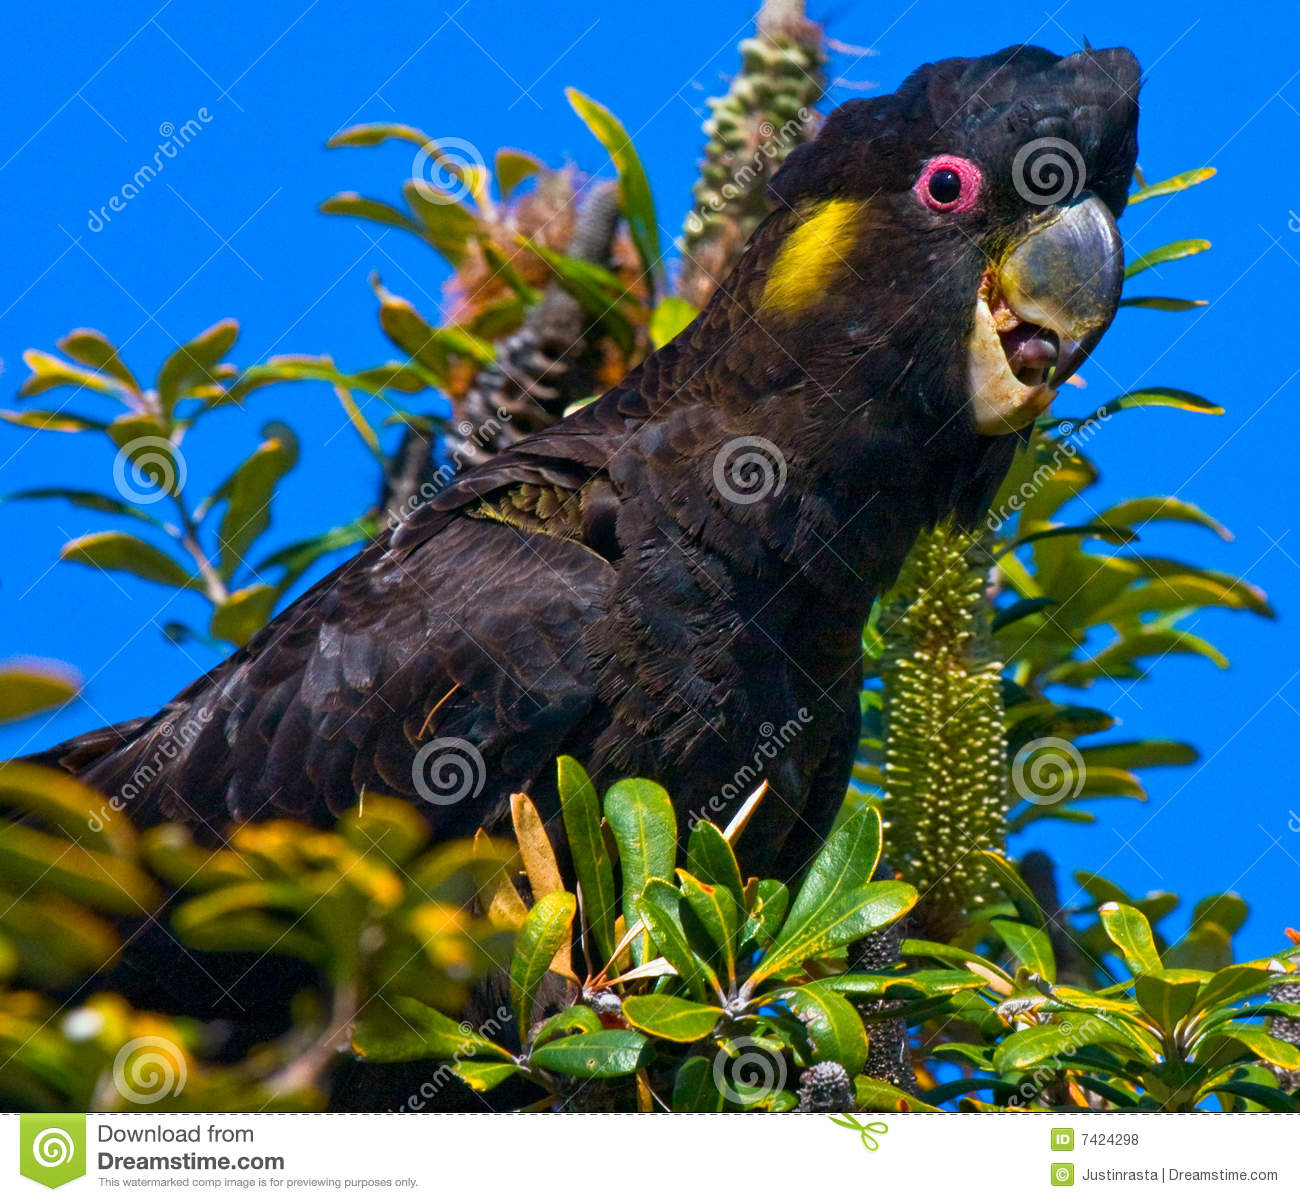 Glossy Black Cockatoo clipart #7, Download drawings